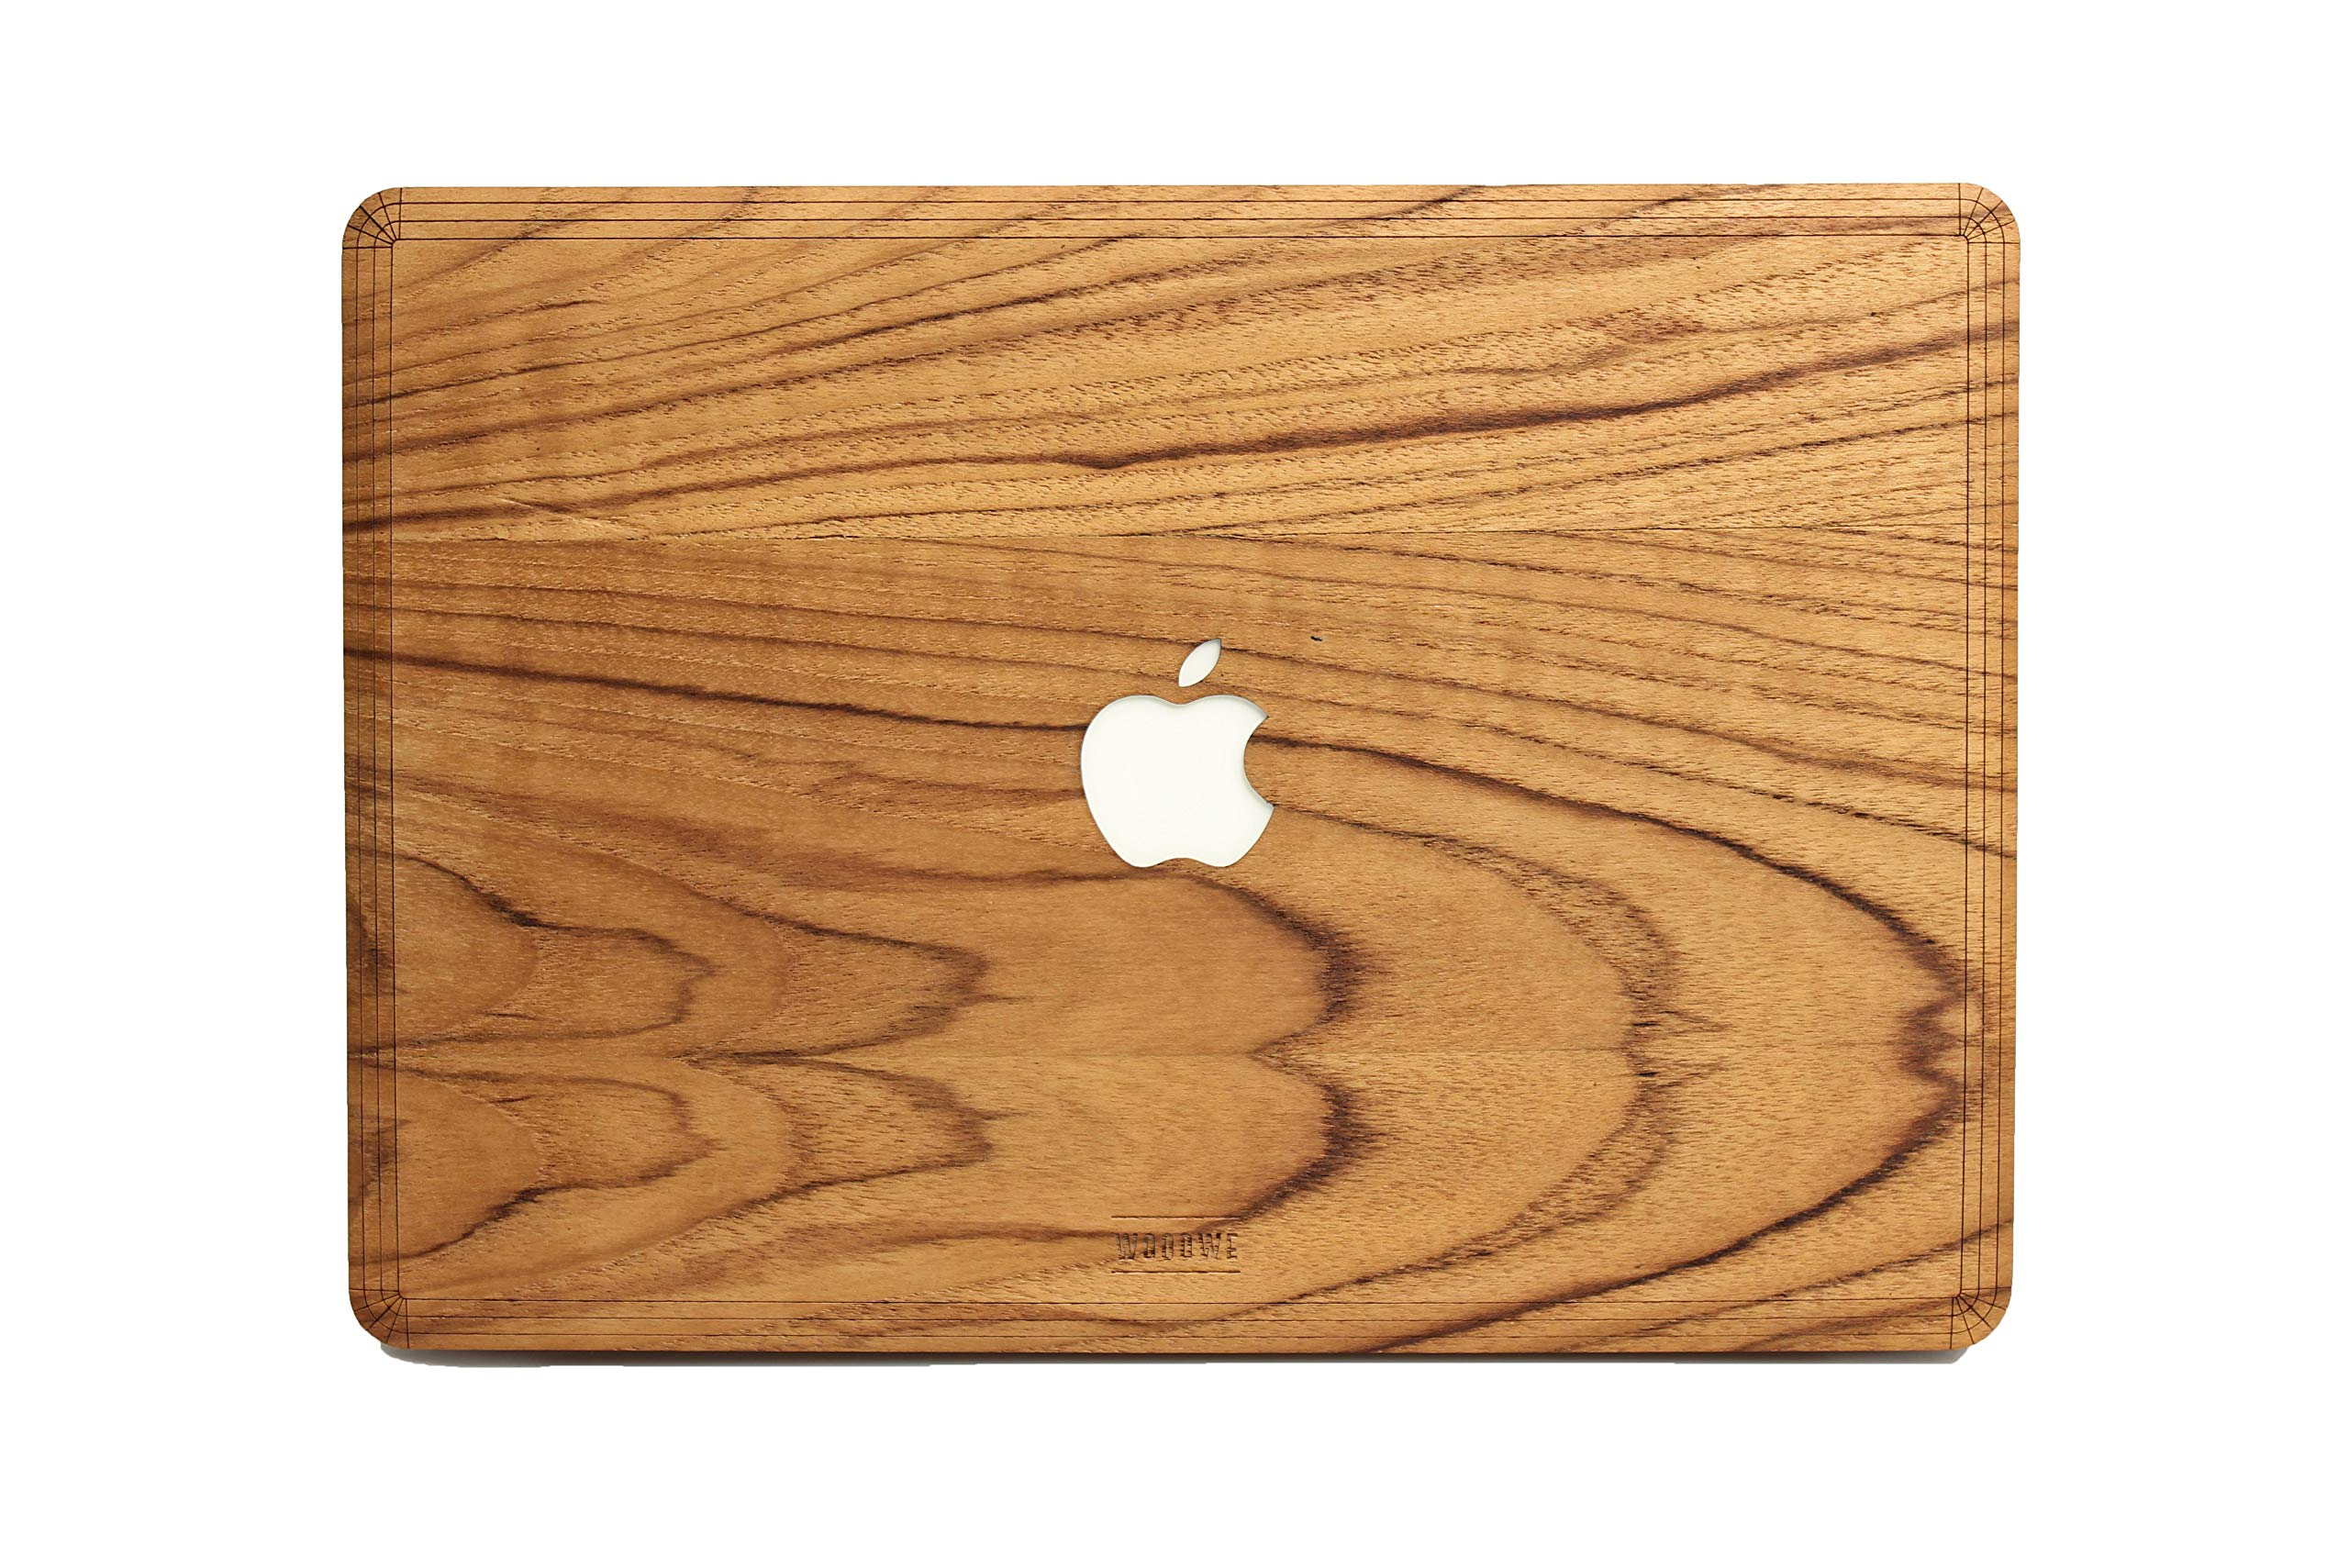 WOODWE Real Wood MacBook Skin Sticker Decal for Mac pro 15 inch Touch Bar Edition | Model: A1707/A1990; Late 2016 – Mid 2017 | Genuine & Natural Teak Wood | TOP&Bottom Cover